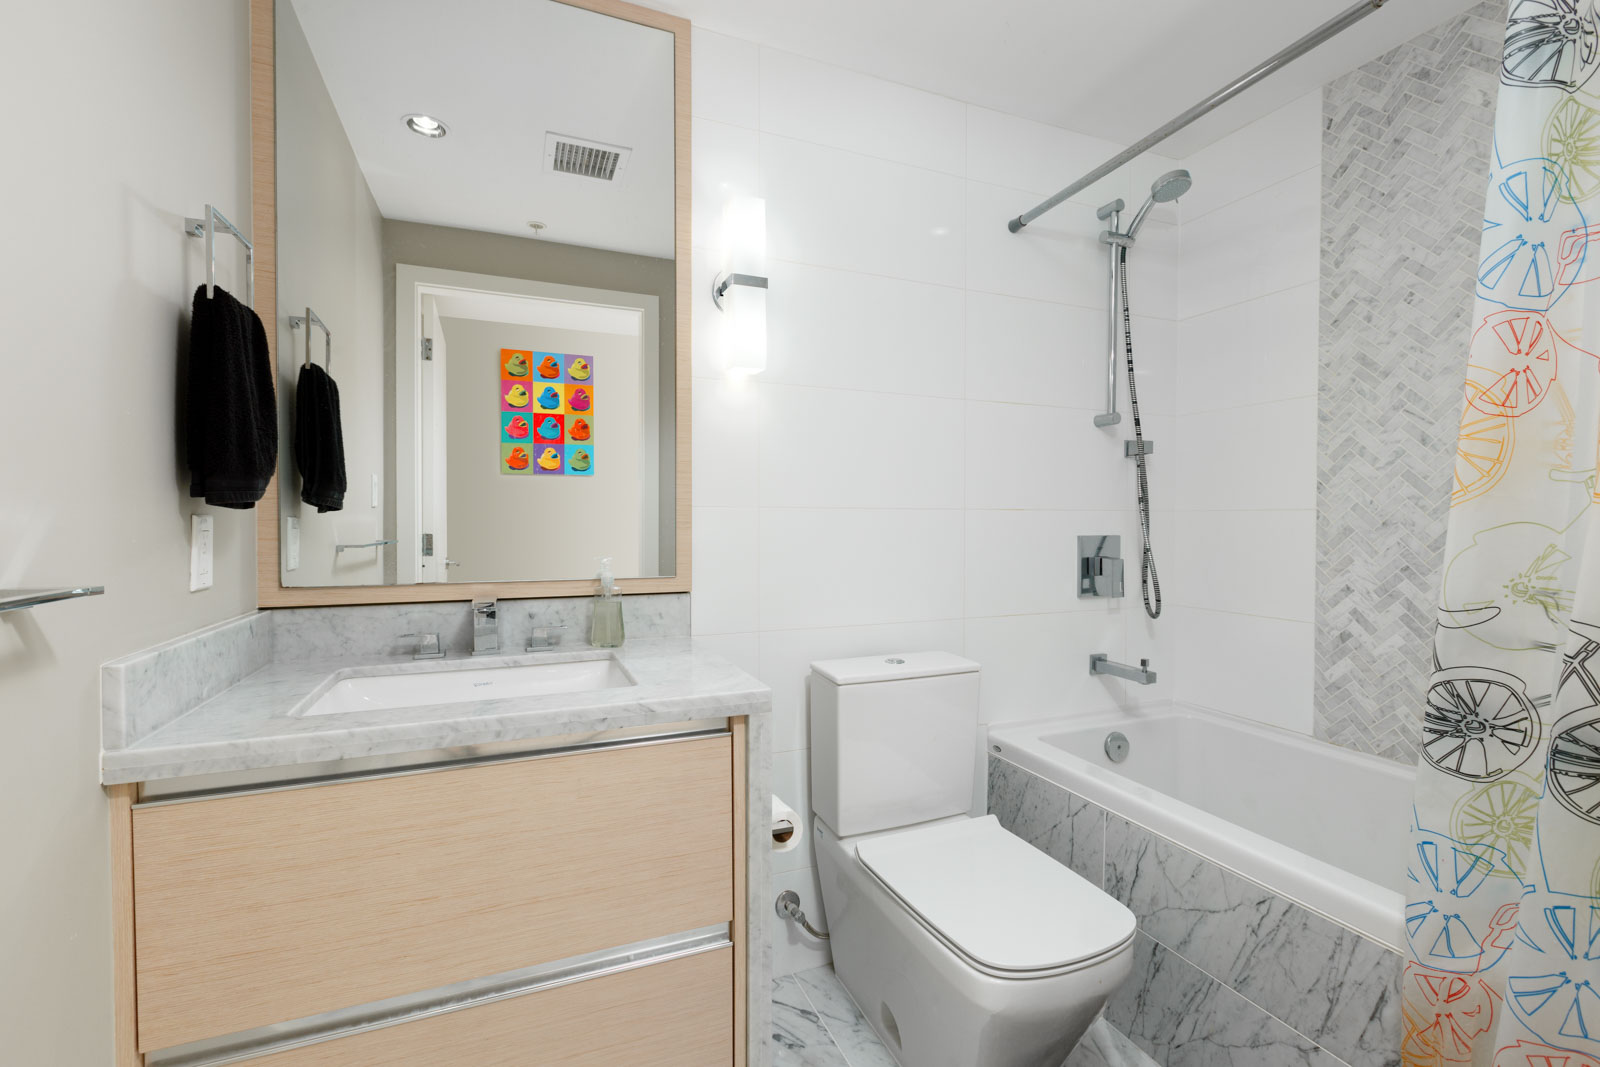 Bathroom in Vancouver rental condo.